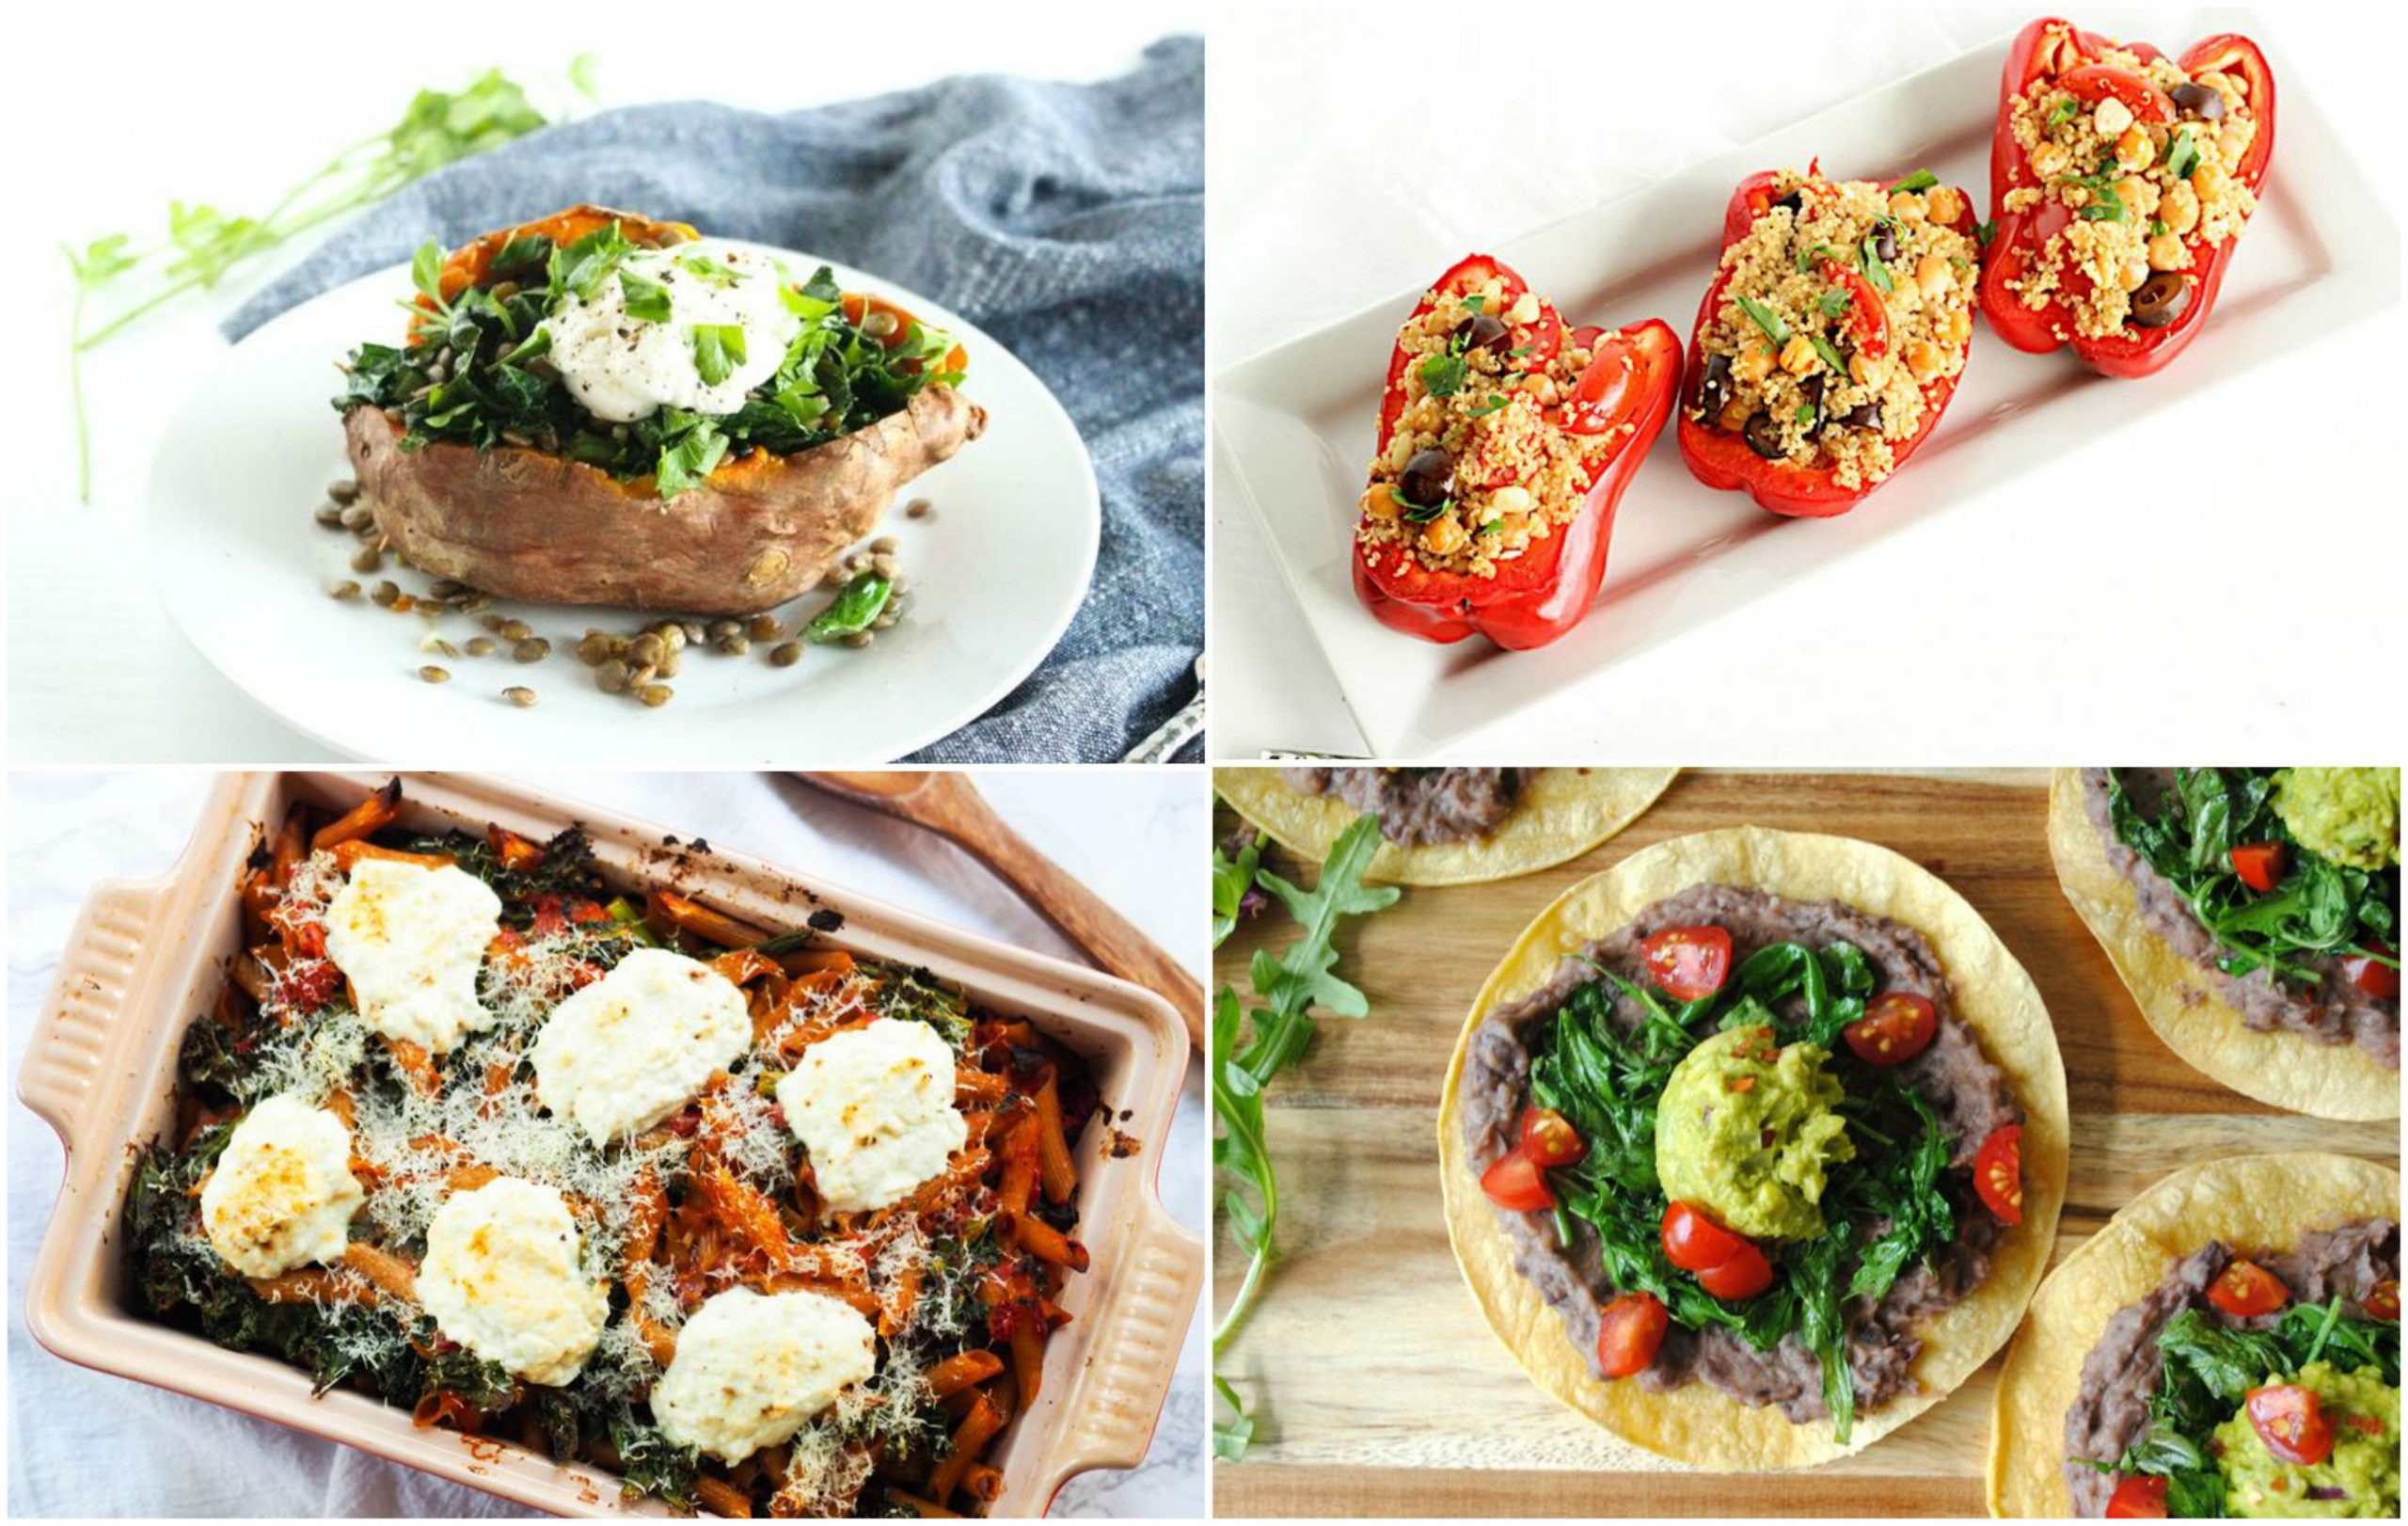 8 Iron-Rich Vegetarian Meals - Healthy Recipes High In Iron